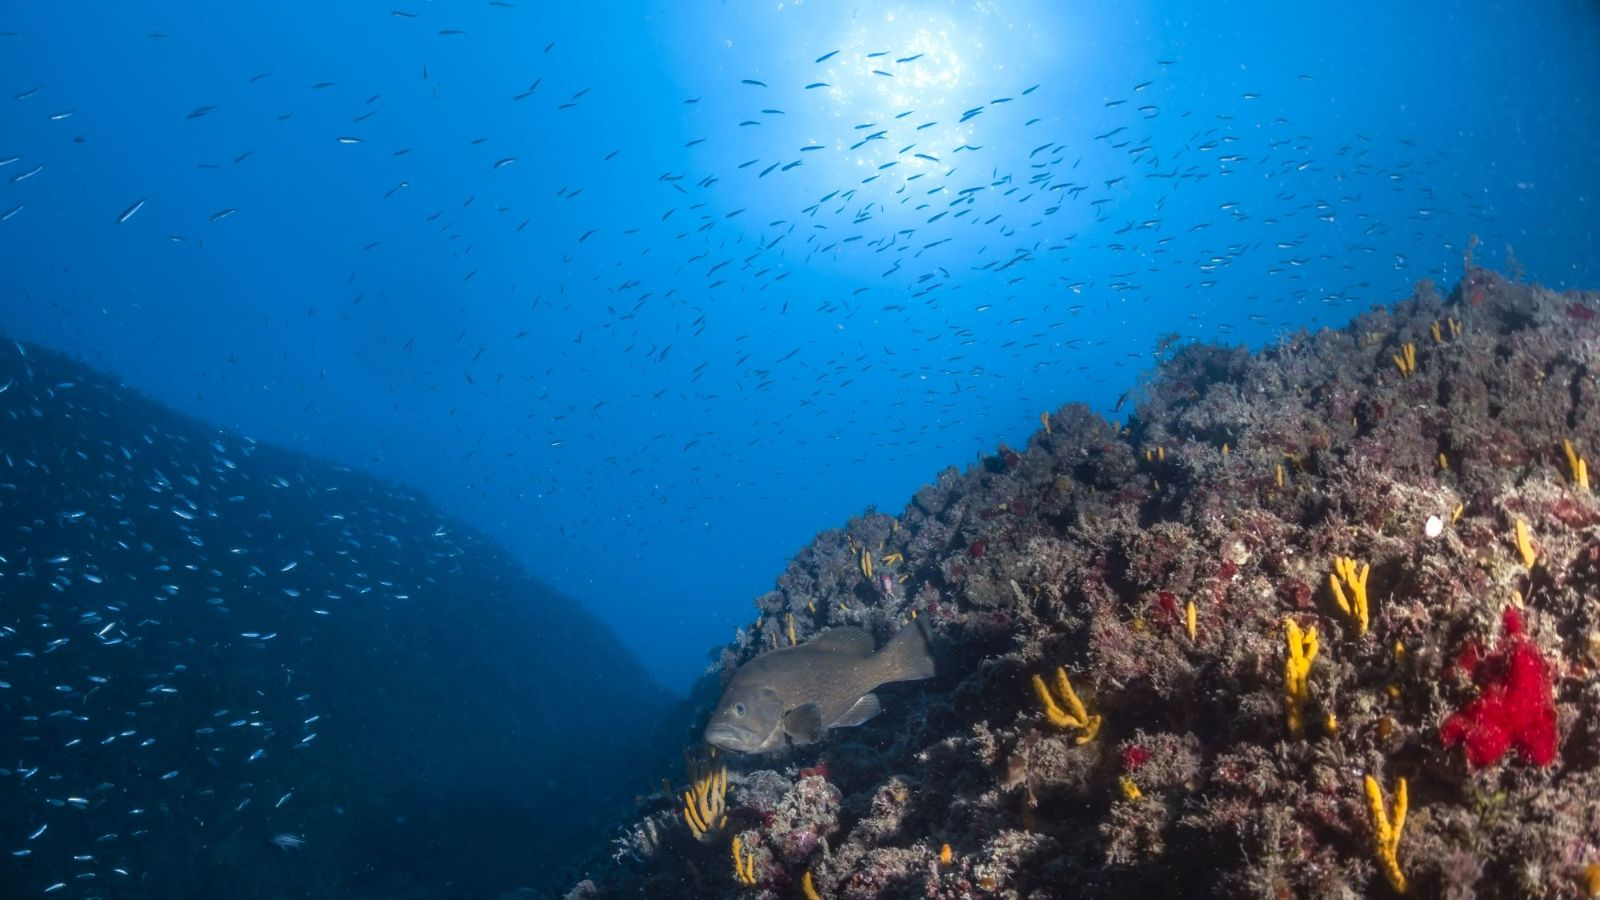 Overfishing Is Harming Even Marine Protected Areas